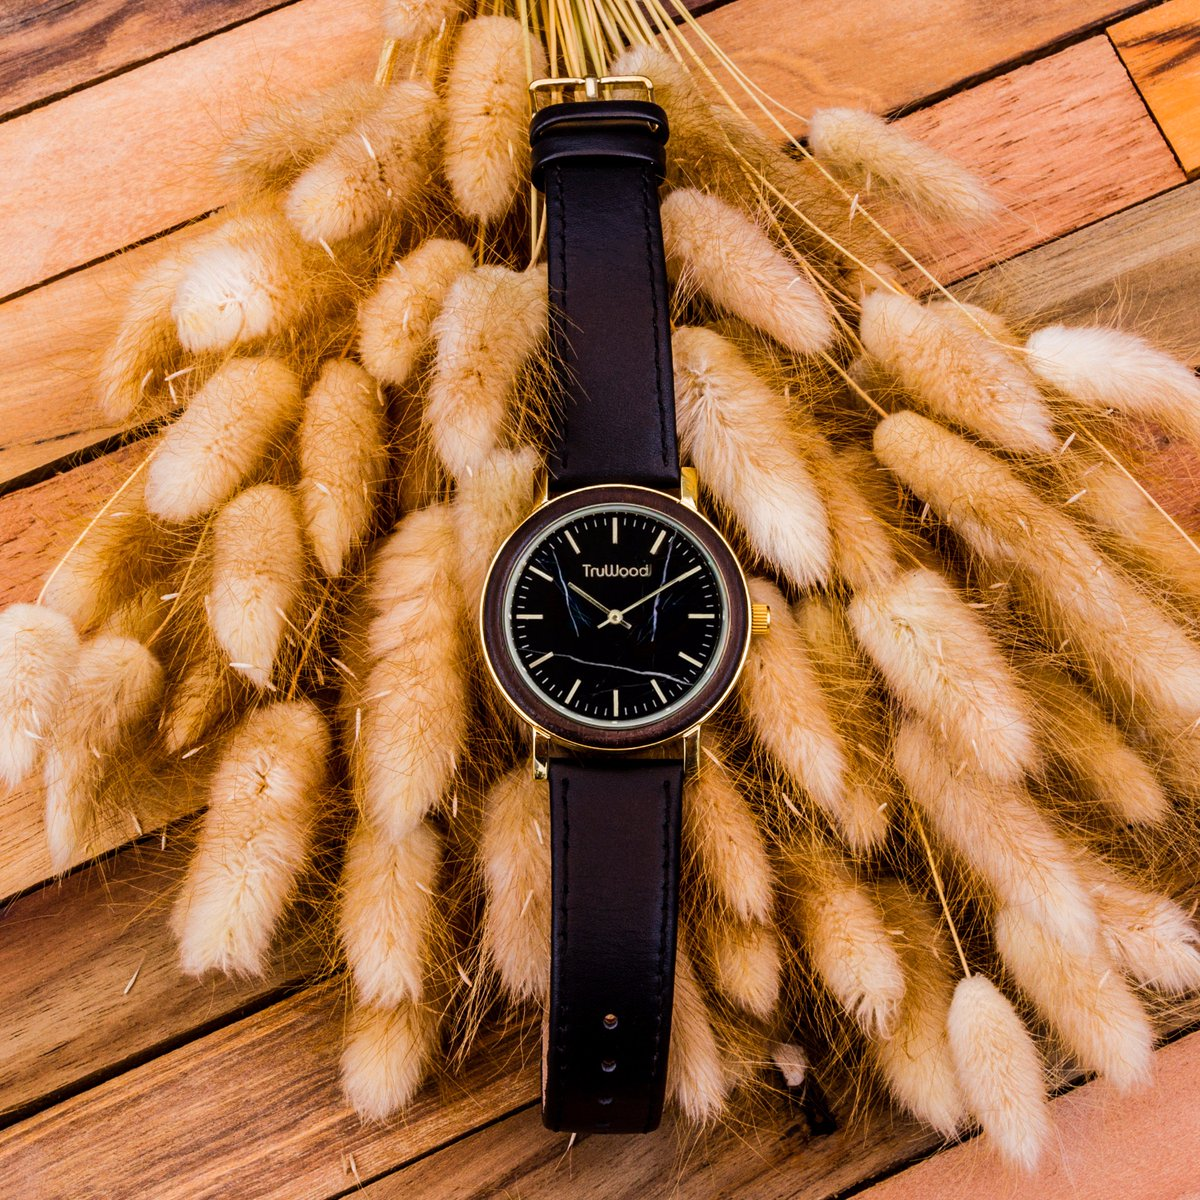 online available accessories the by watches wooden ten arrow for is pin planted truwood fashion trees are